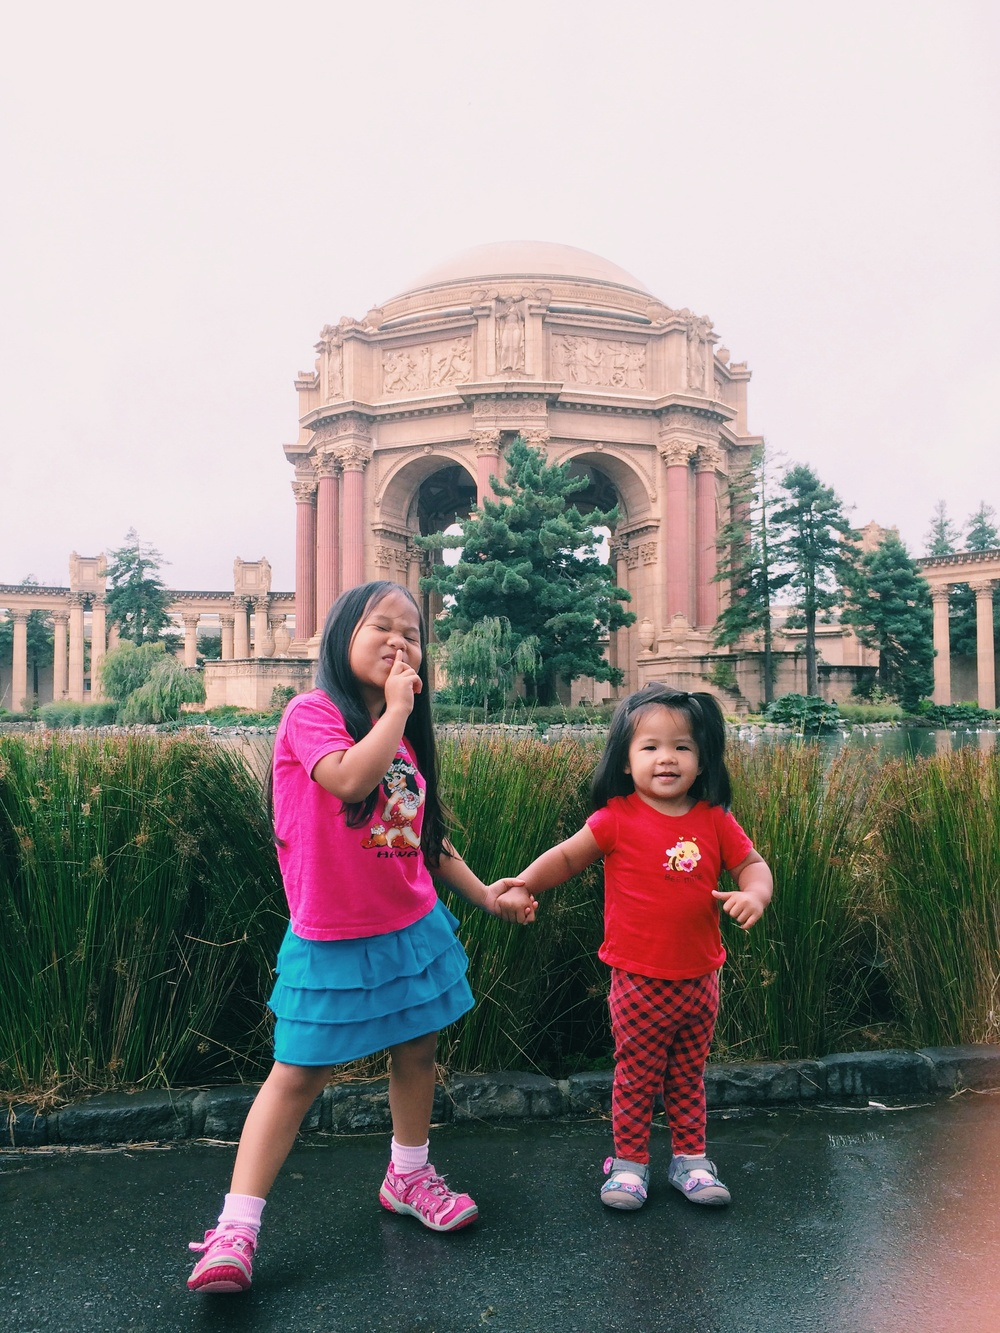 Mia and Graecyn at the Palace of Fine Arts. Photo taken by Farrah using the iPhone 5S